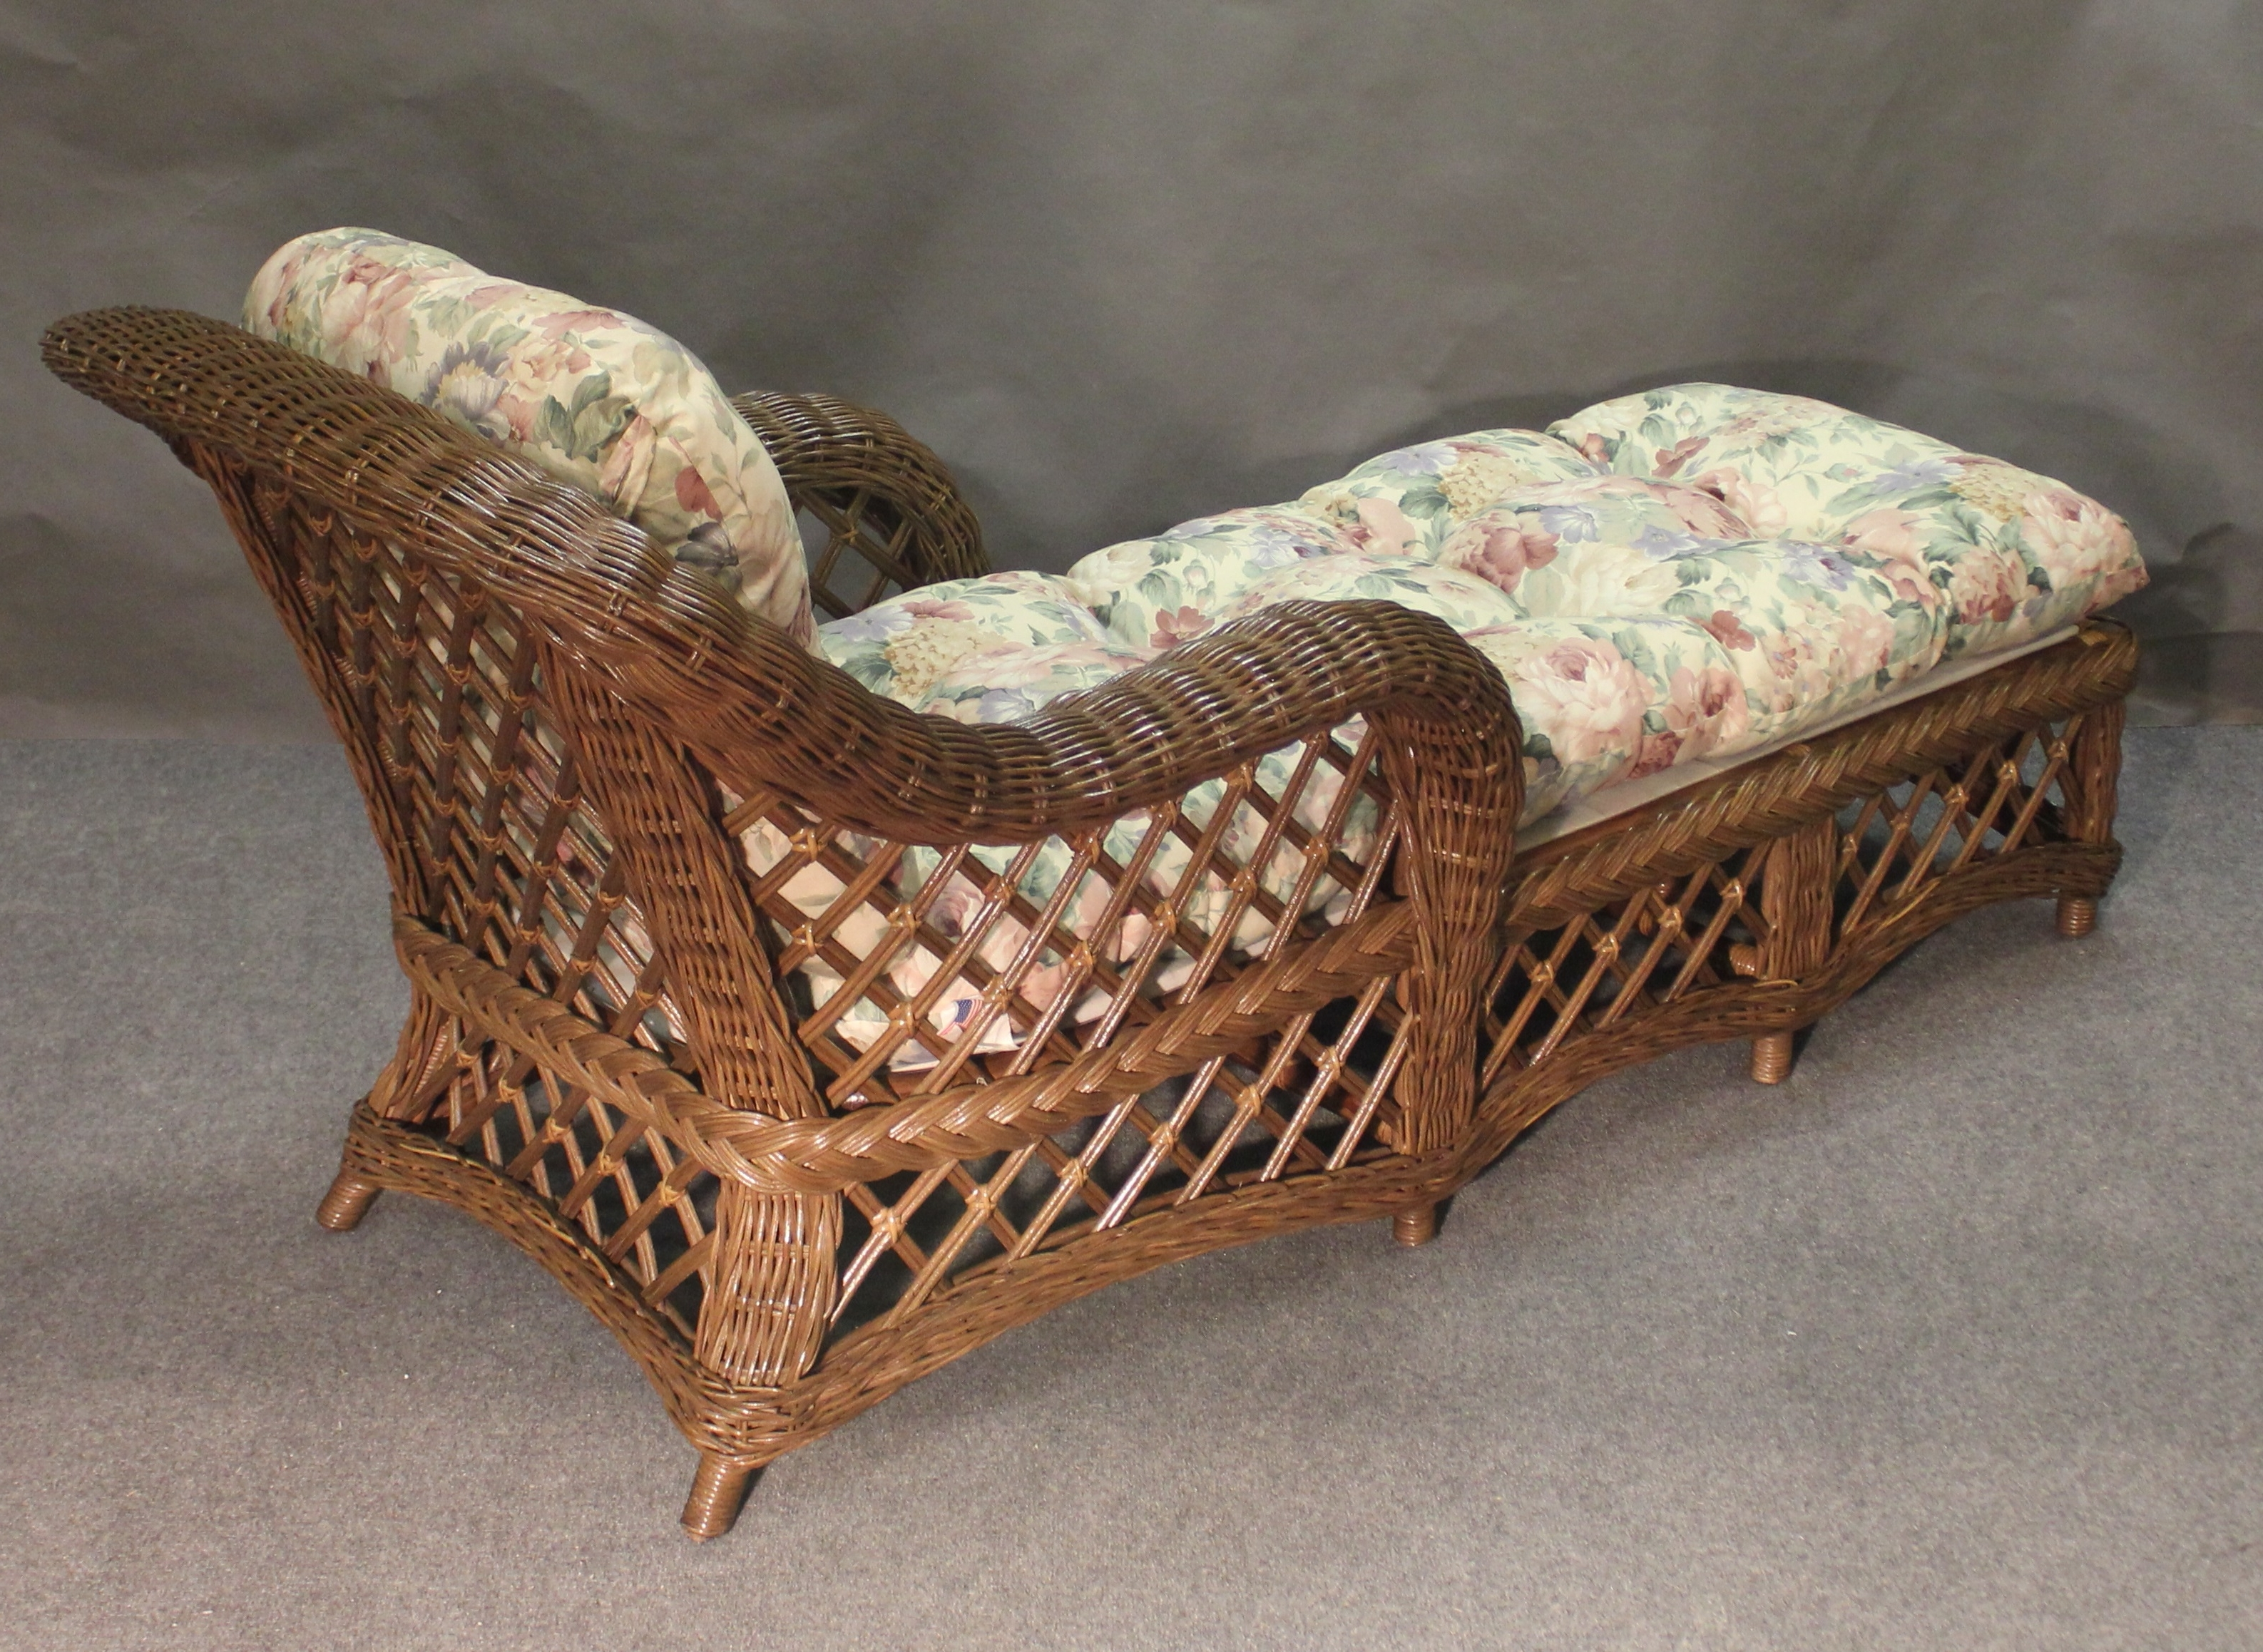 2017 Wicker Chaise Lounges Intended For Cape Cod Wicker Chaise Lounge, All About Wicker (View 1 of 15)